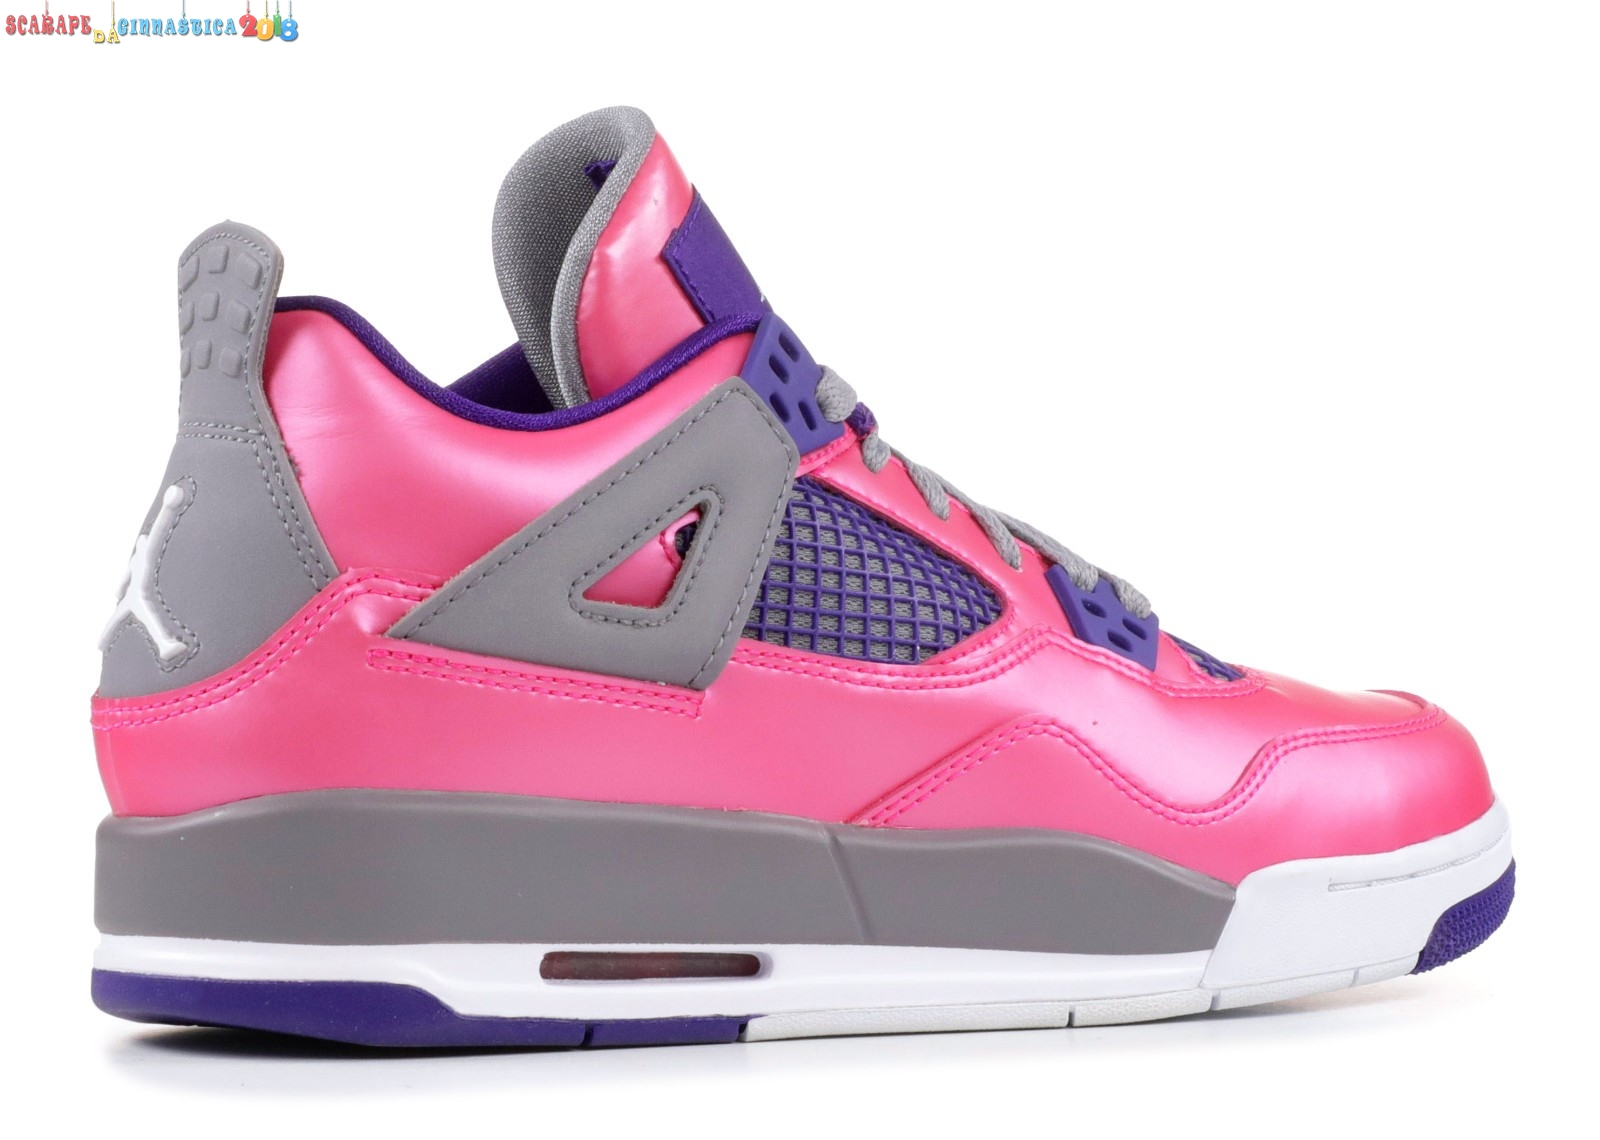 Acquisto Air Jordan 4 Retro Gs Rosa Porpora (487724-607) Replica